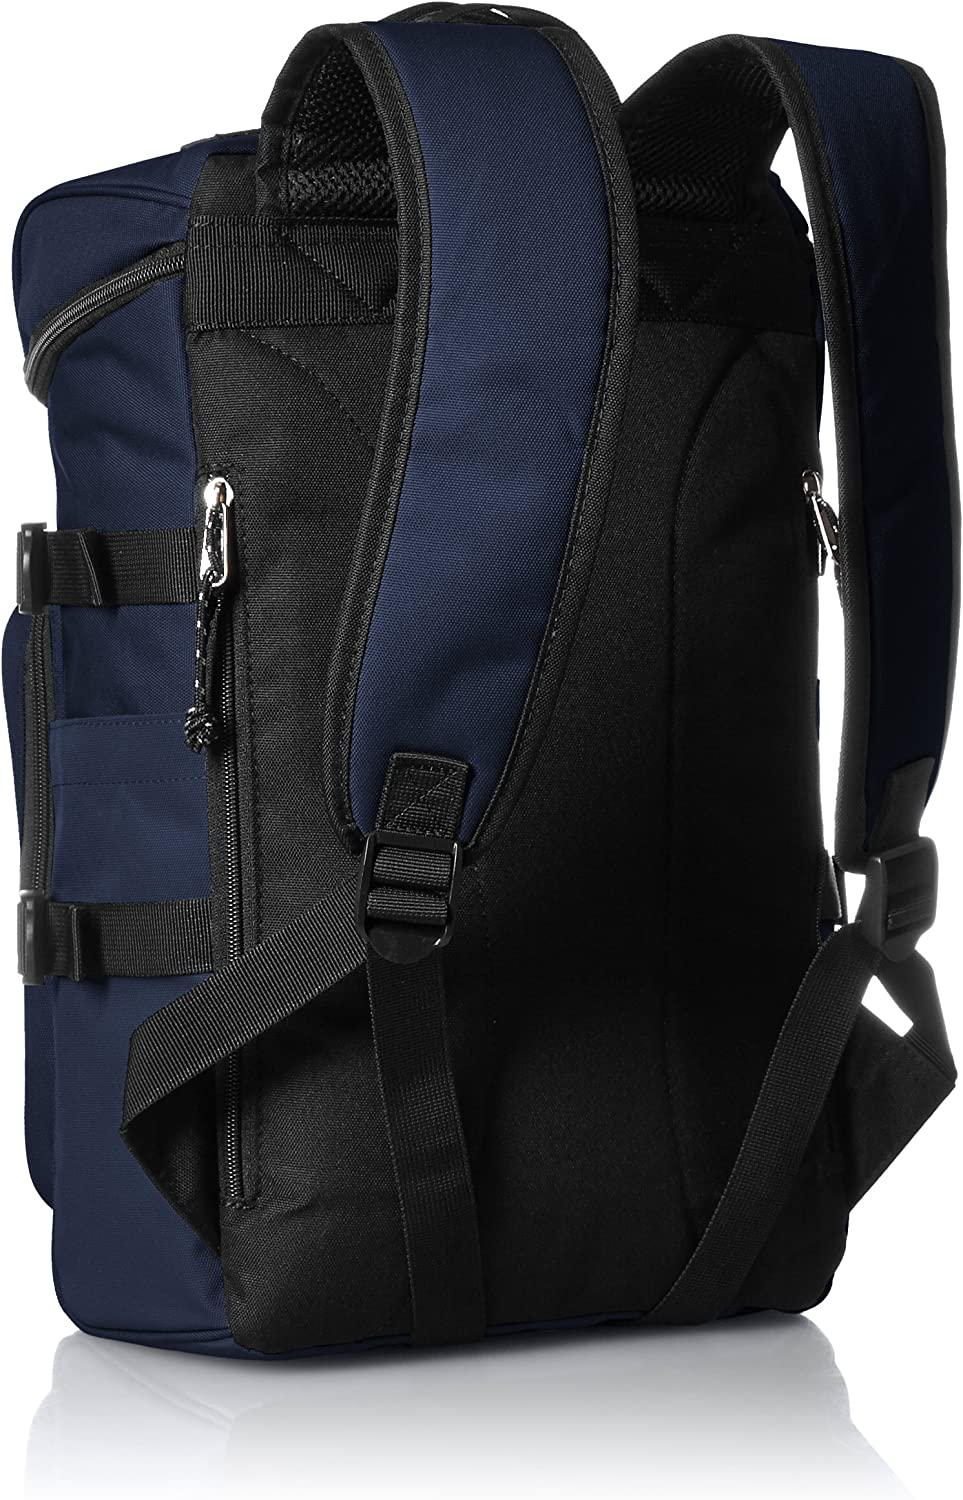 Navy PSEG Luc Erie pack nylon Square rucksack daypack REP-30108 NV